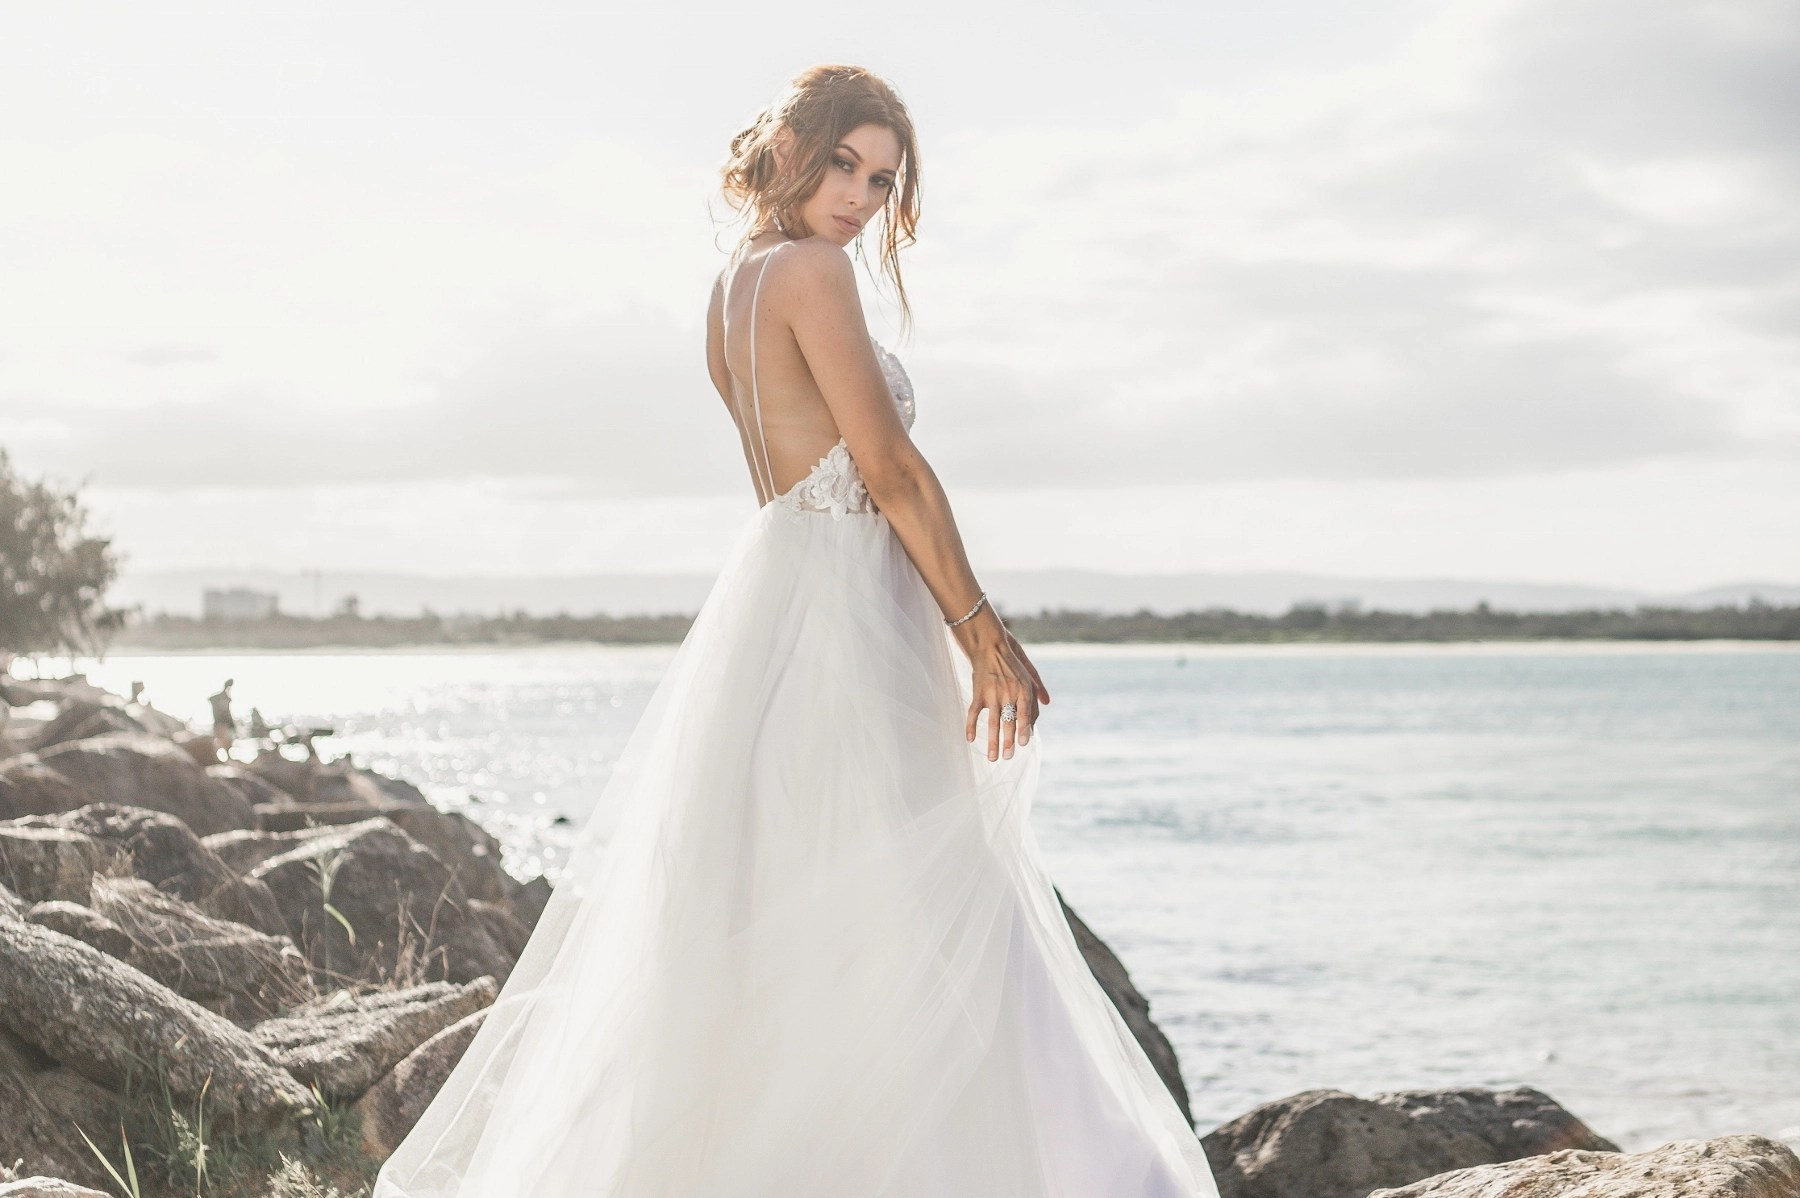 Do You Need To Wear An Underskirt With Your Wedding Dress